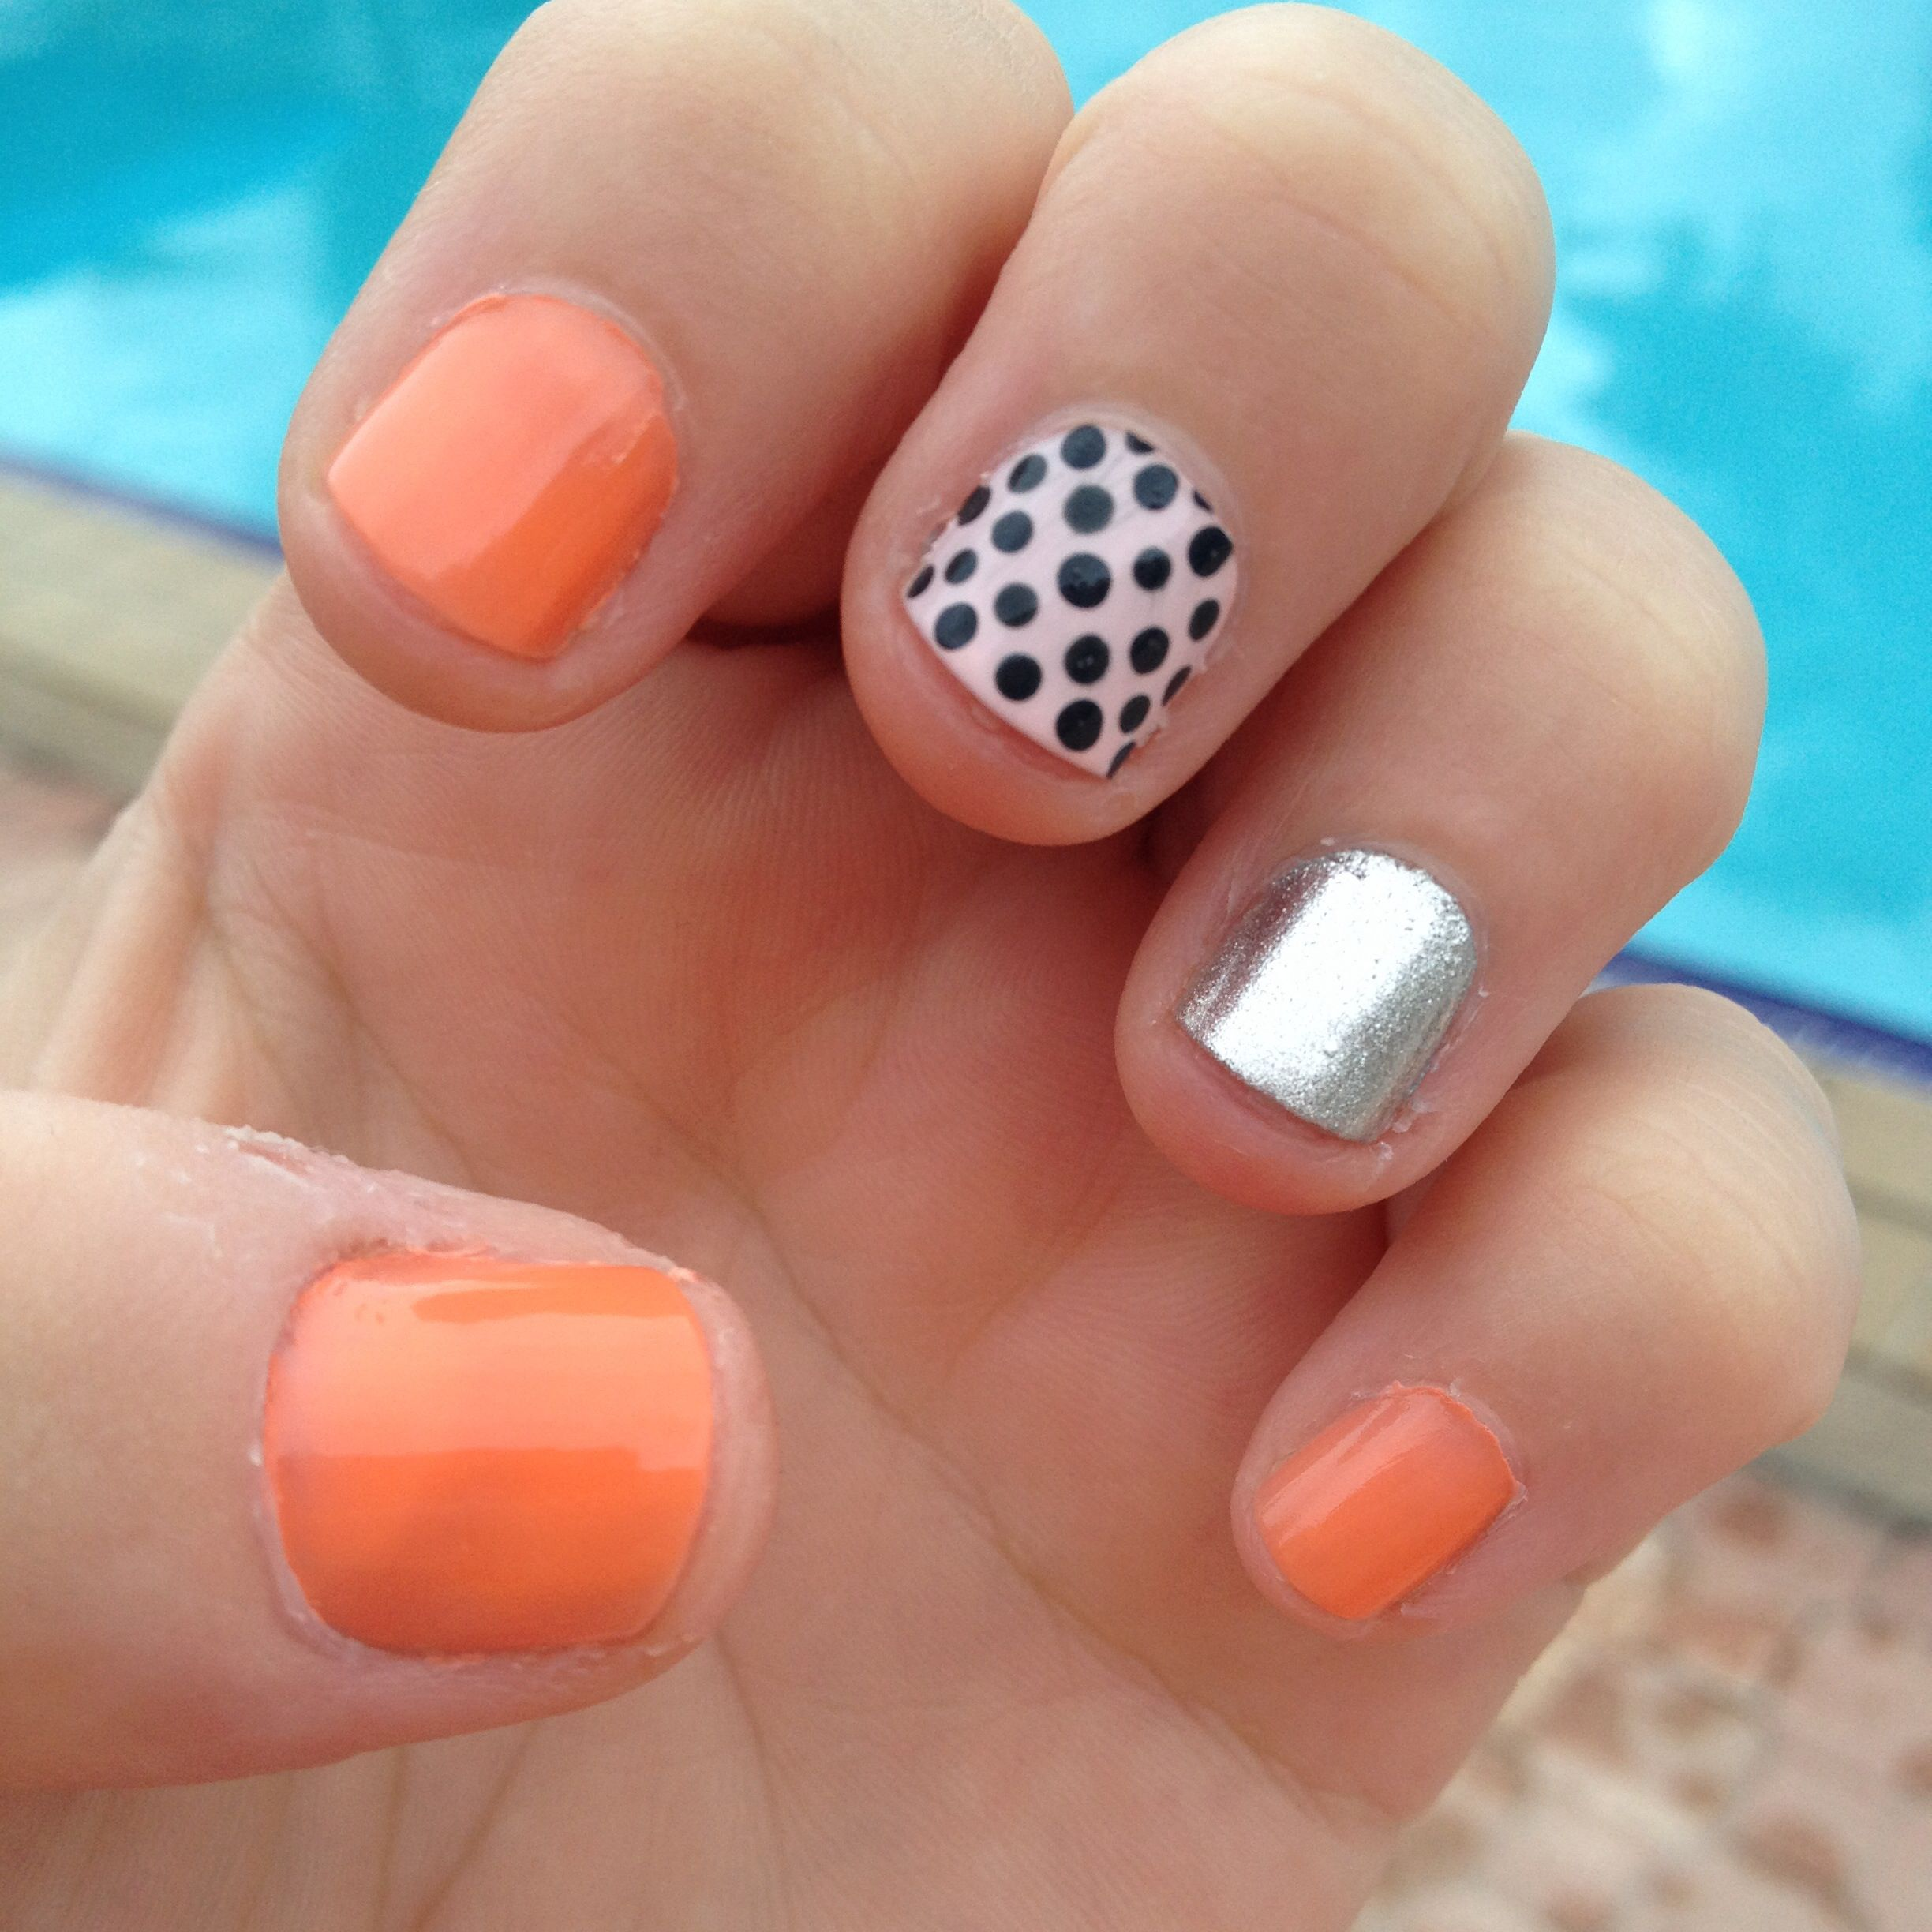 easy nail art design for short nails. summer. dotting tool. essie serial shopper. accent nails romper room, and mind your mittens. revlon silver dollar.